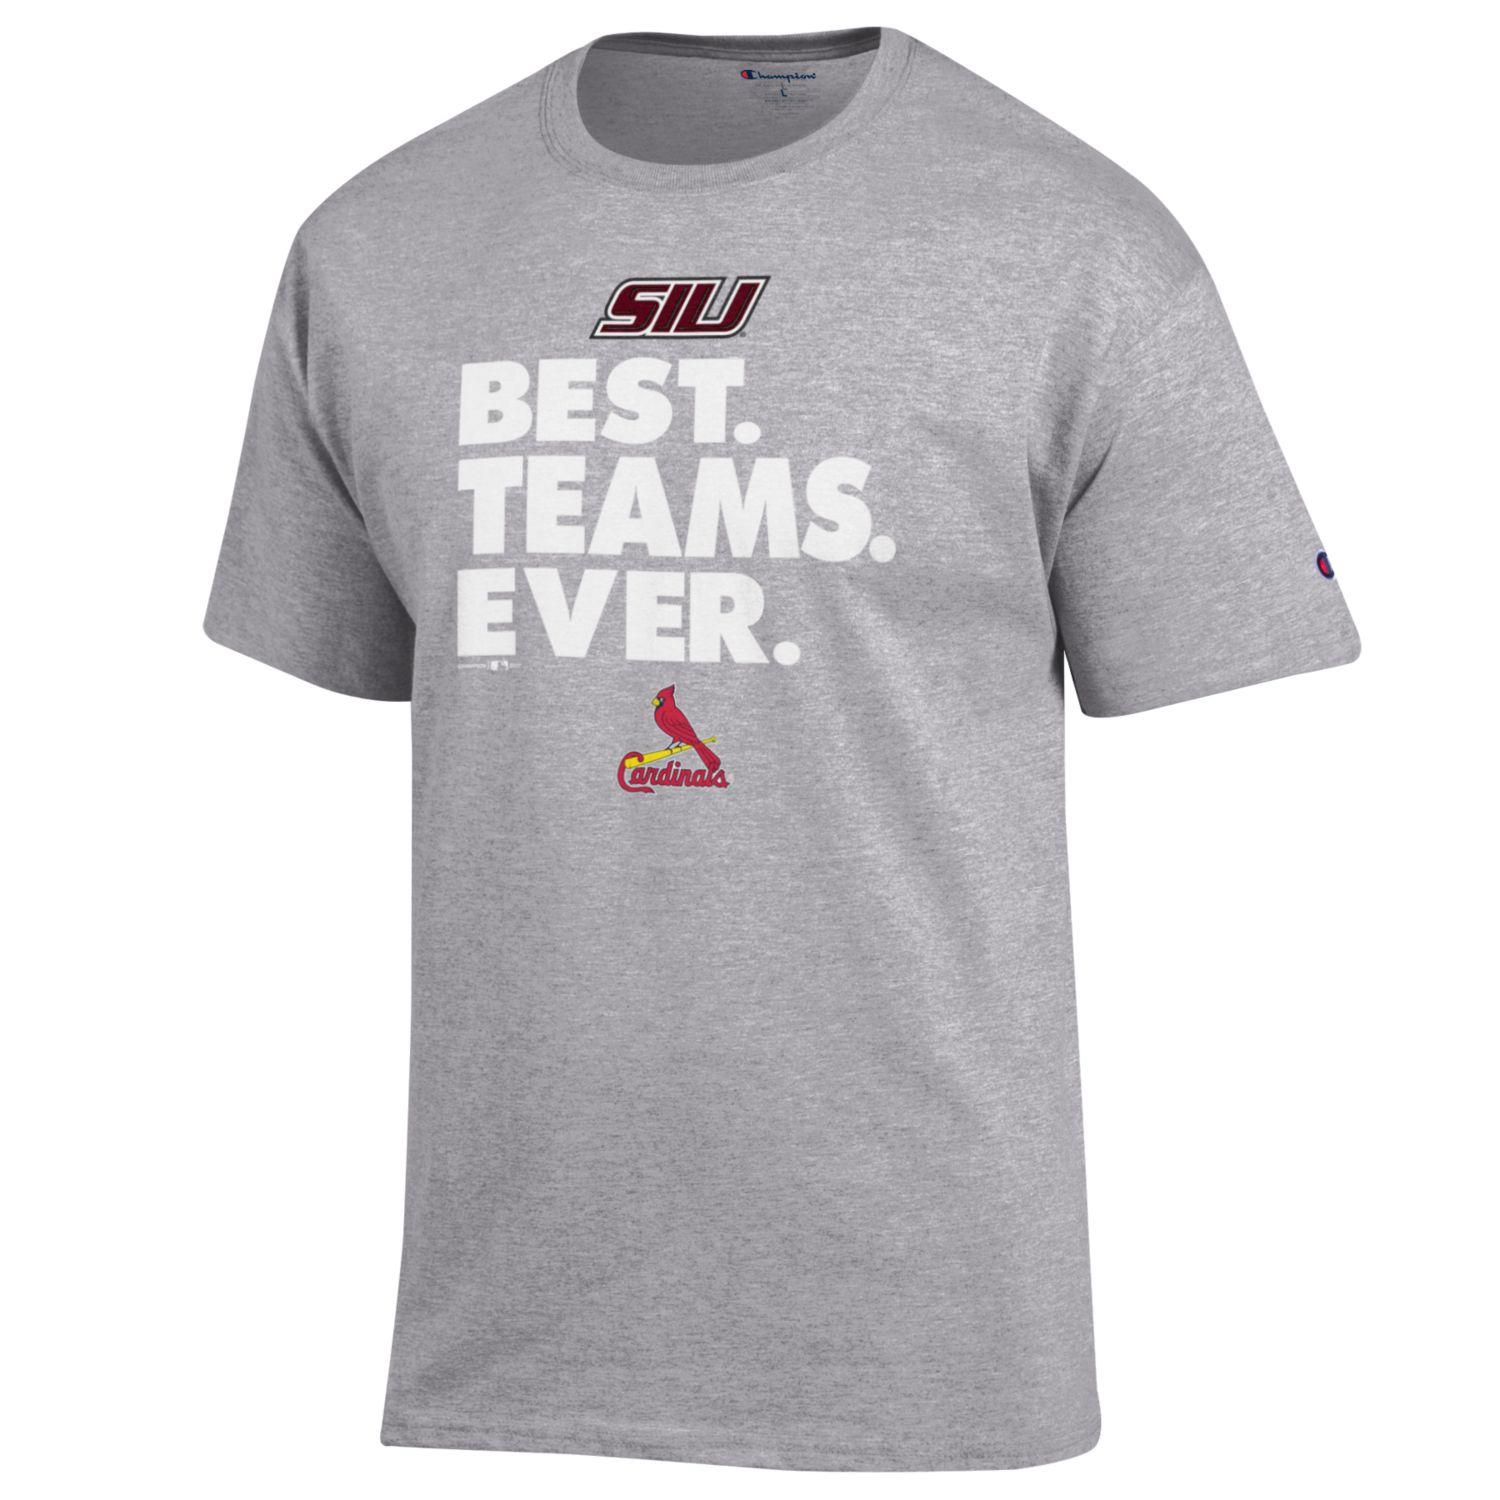 Image for the CHAMPION® SIU CARDINALS BEST TEAMS T-SHIRT product